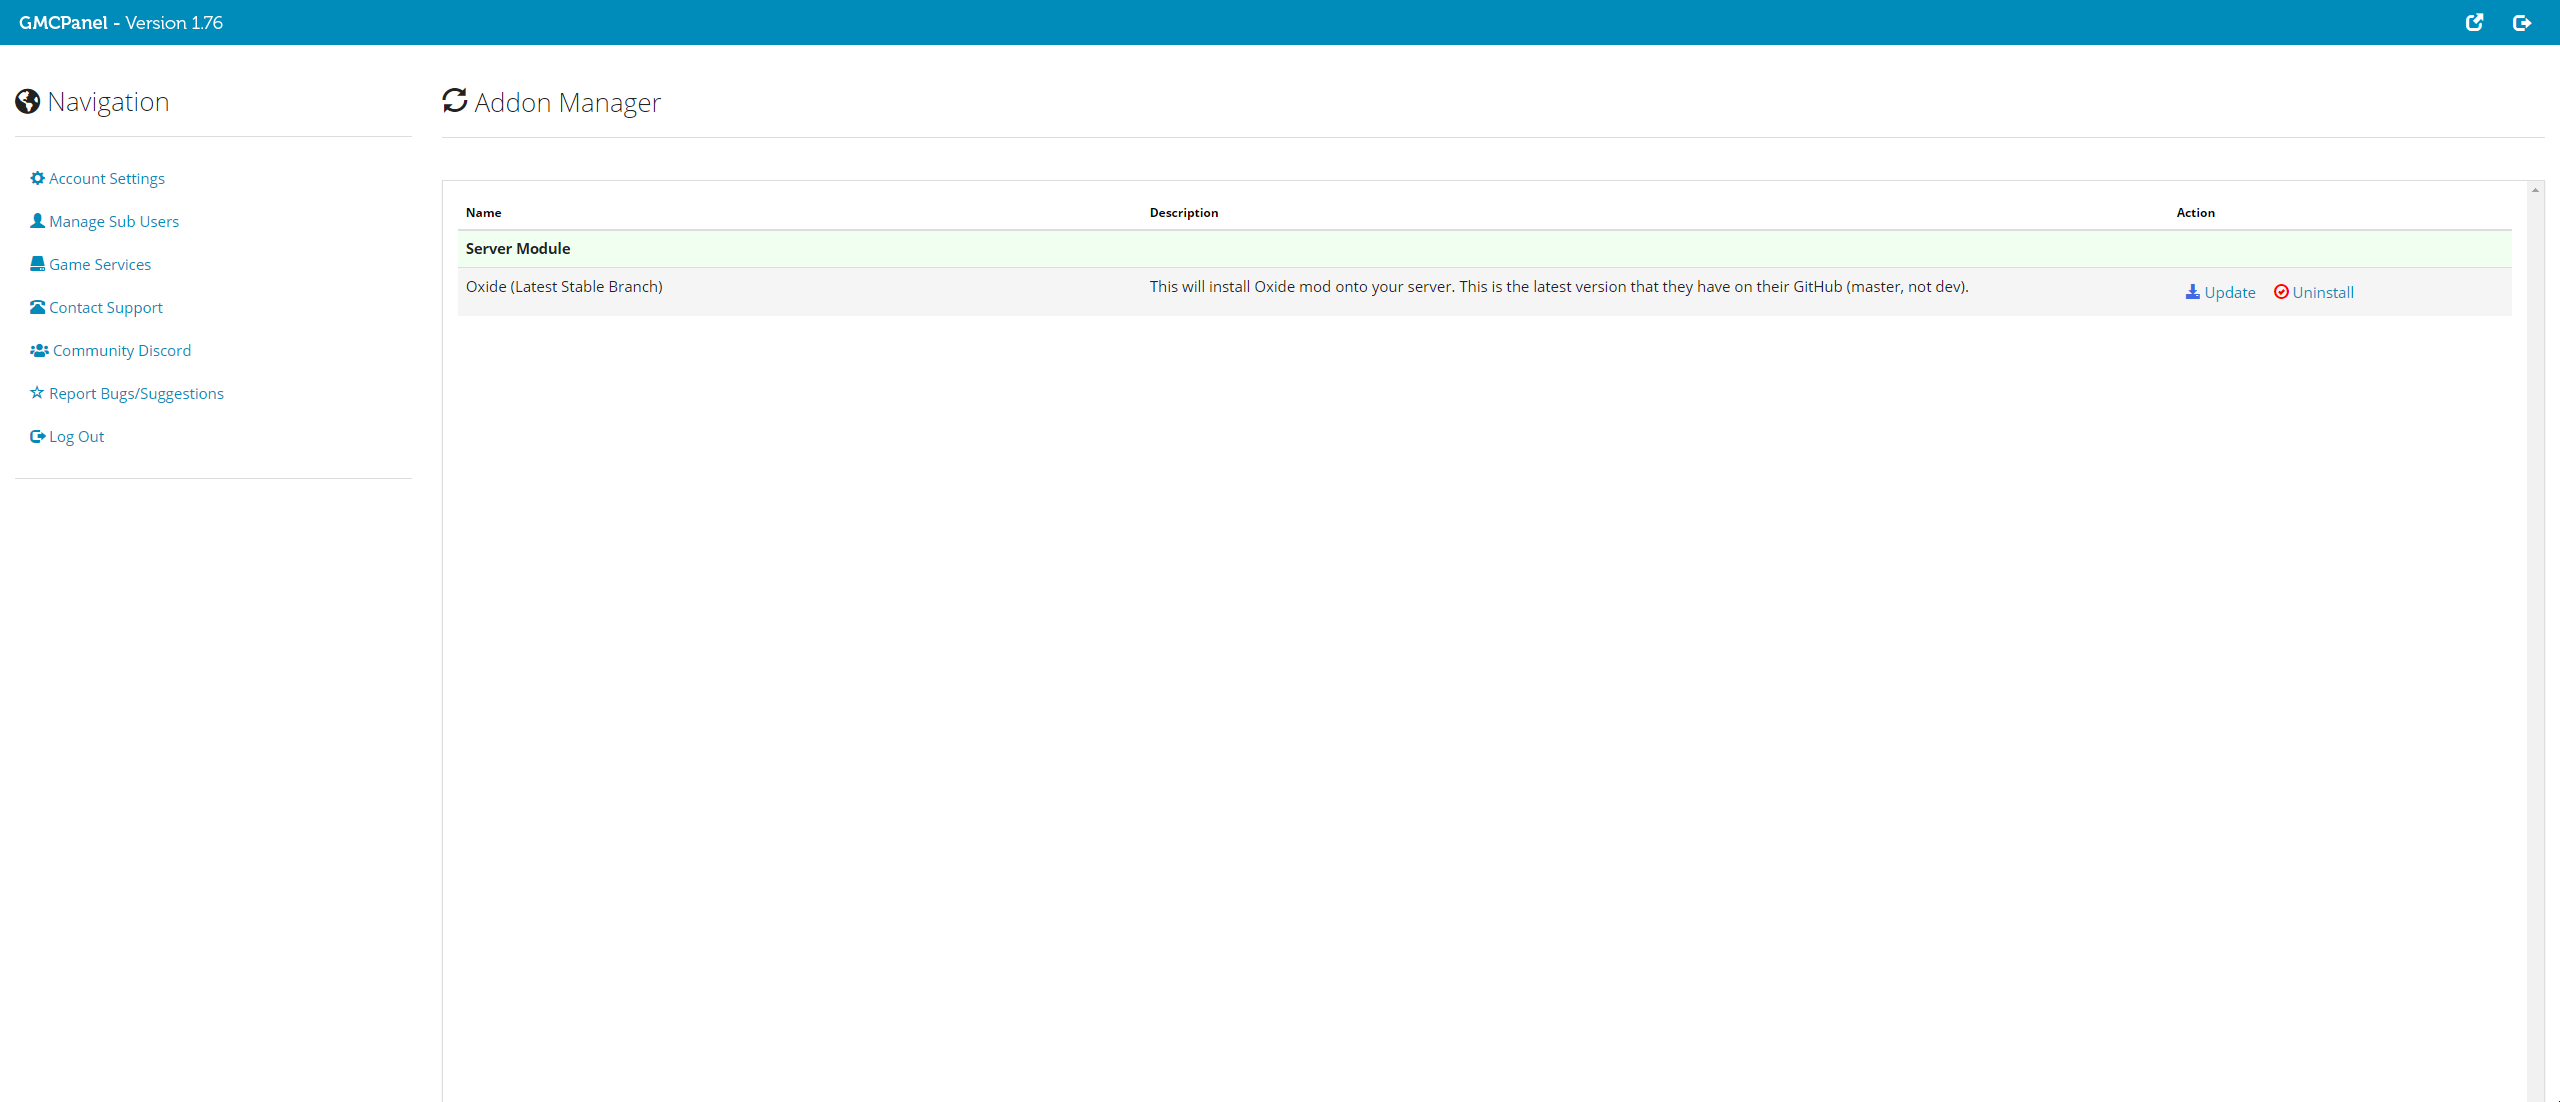 Addon Manager from GMCPanel